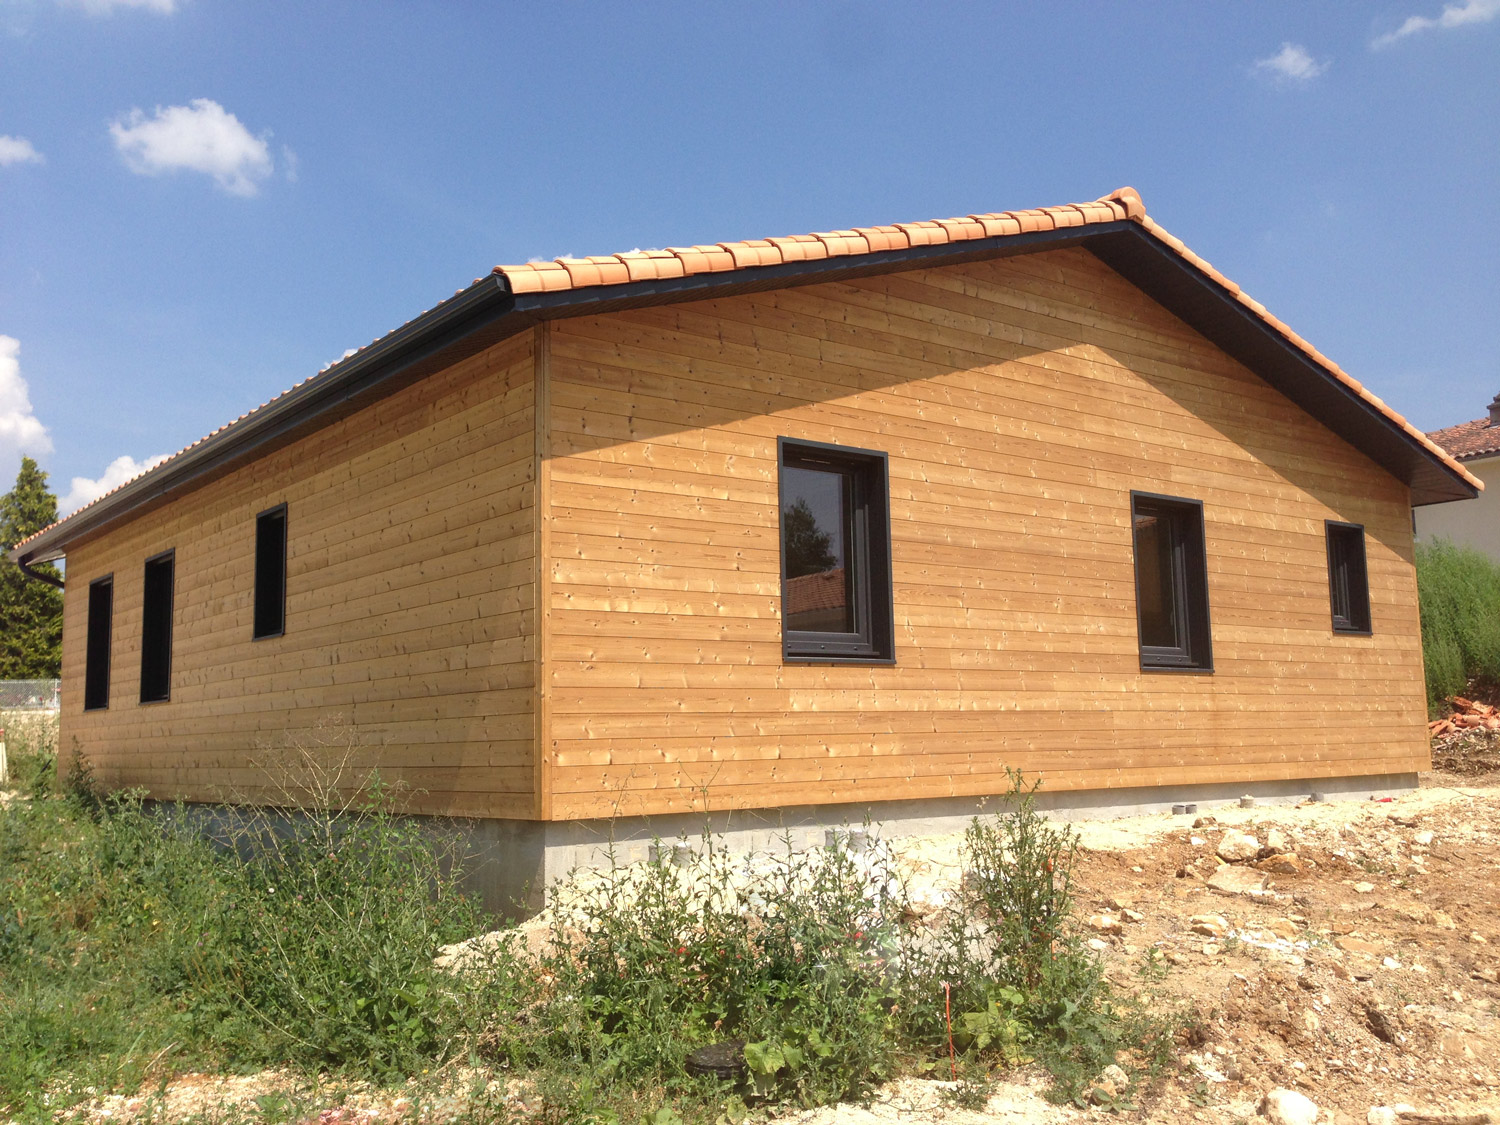 Cout construction maison bois for Evaluer cout construction maison